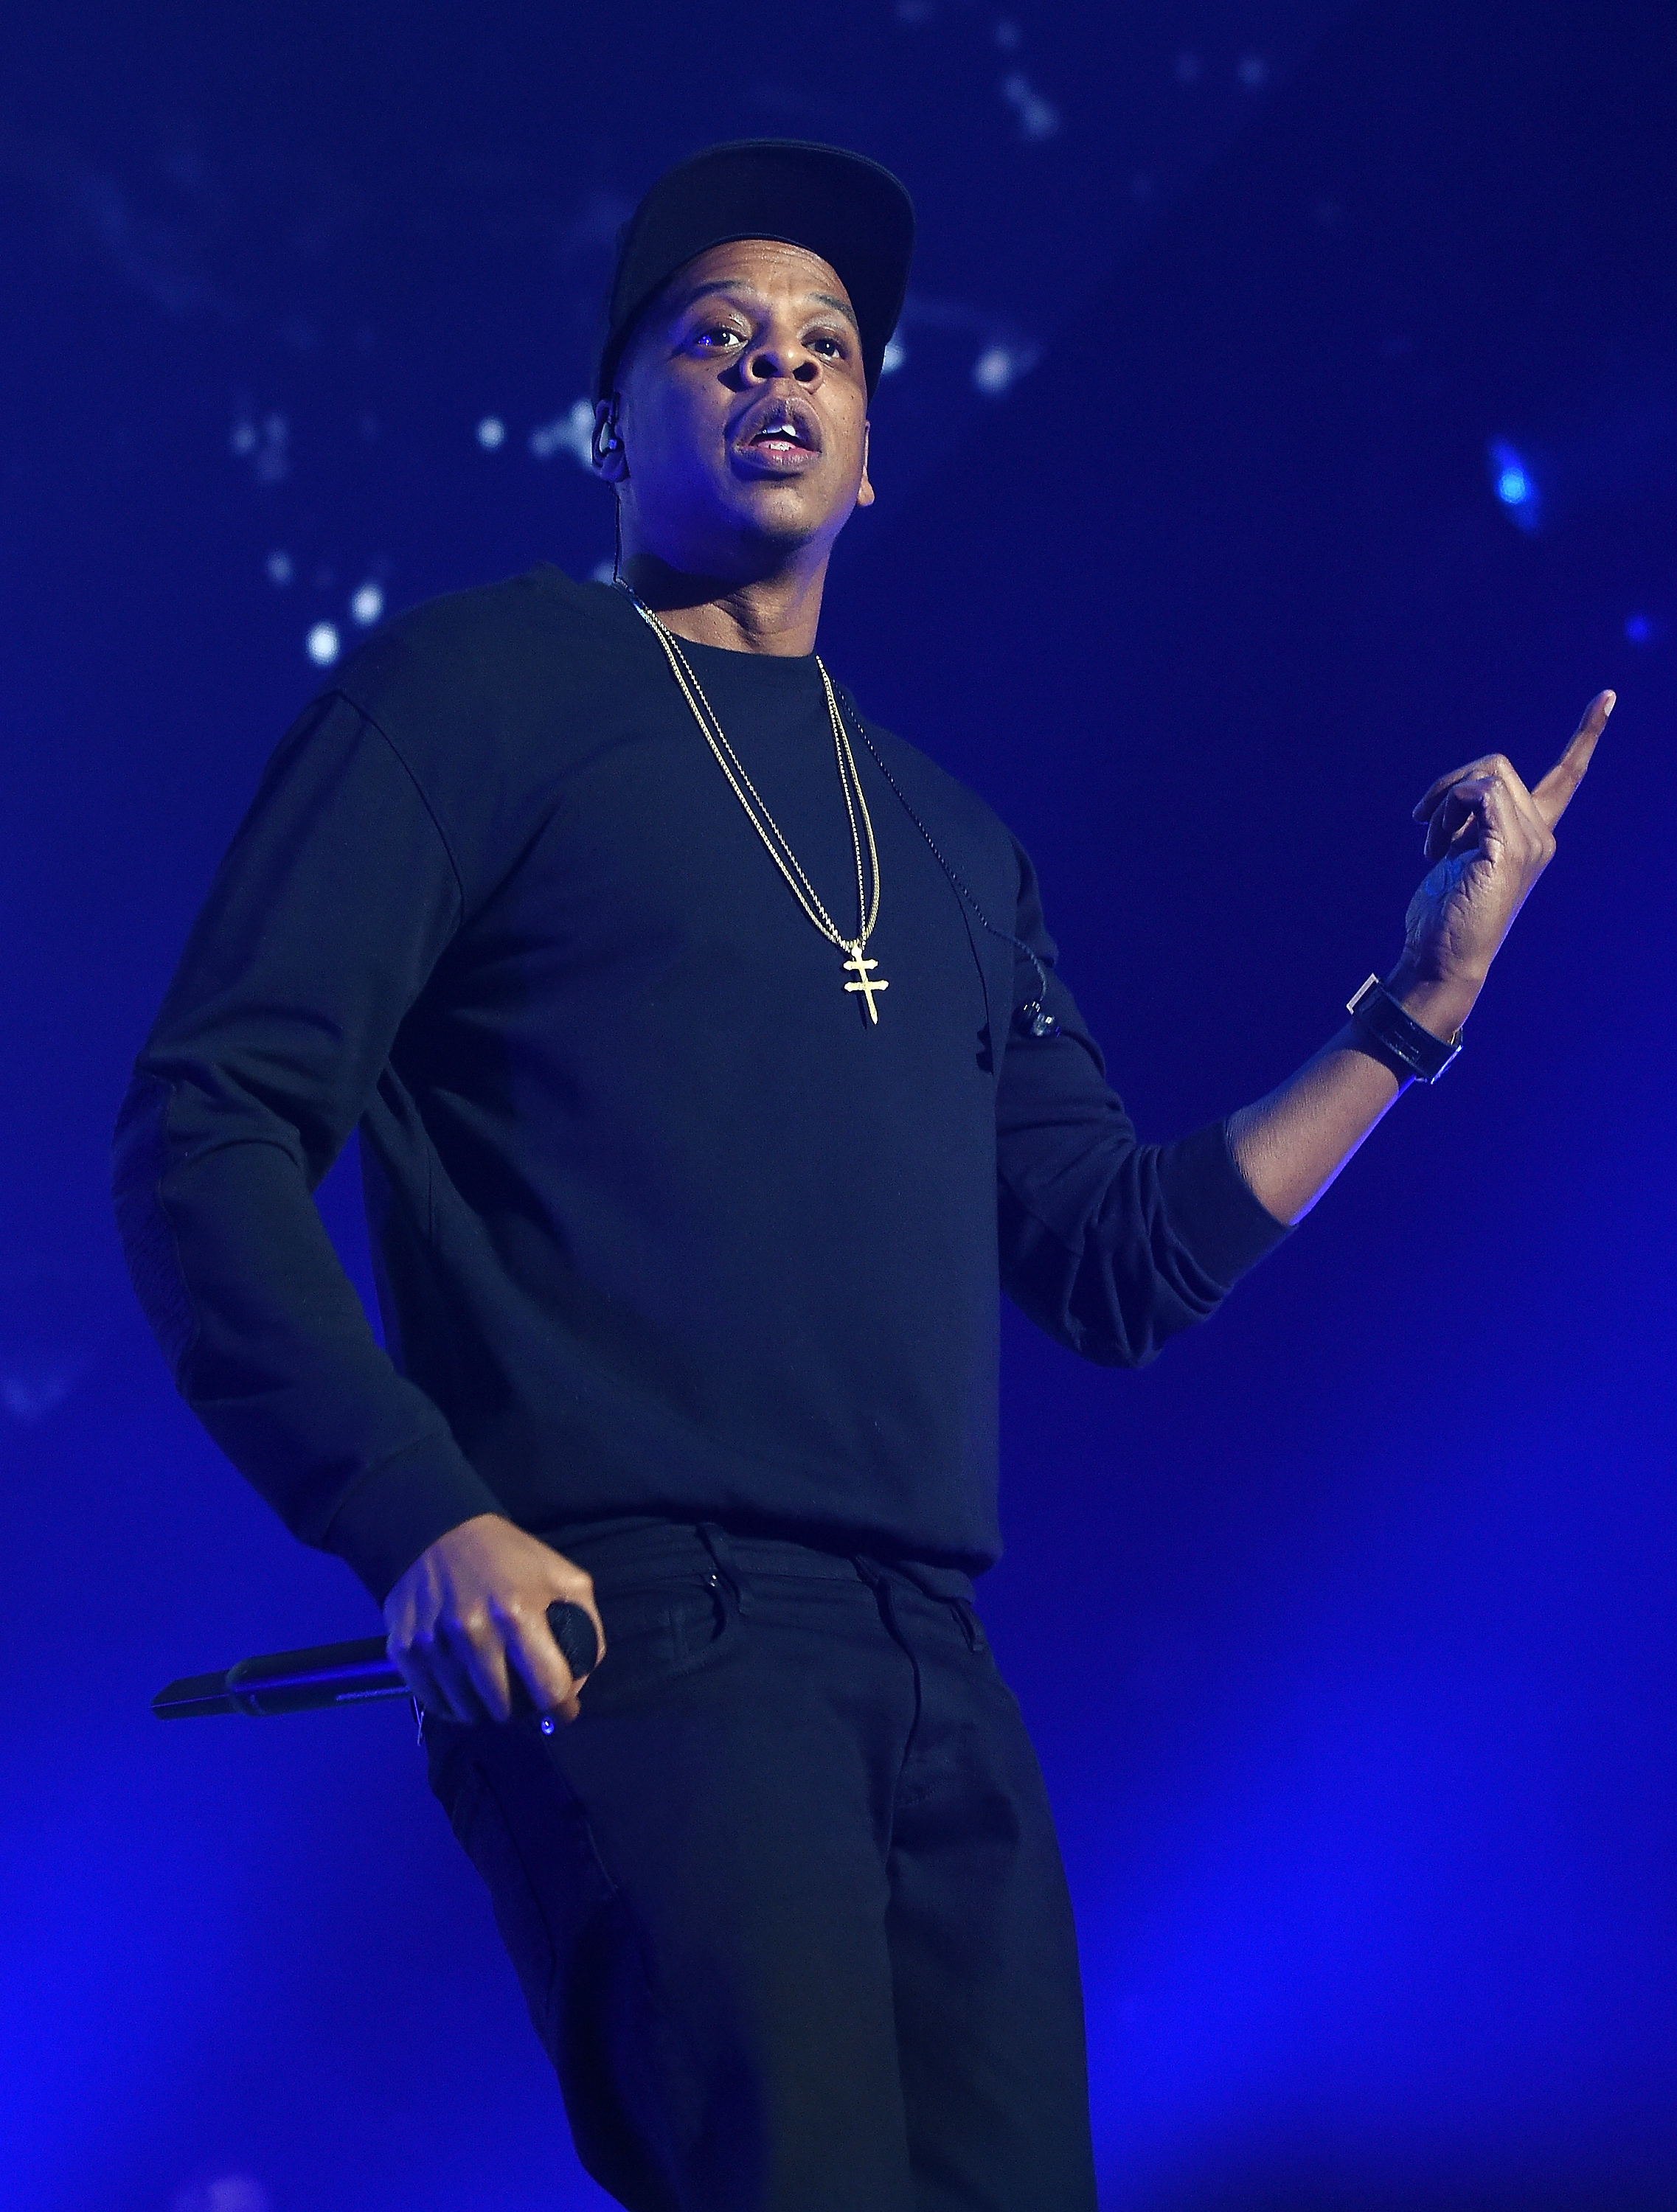 Jay-Z performs onstage during TIDAL X: 1020 Amplified by HTC in New York City on Oct. 20, 2015.